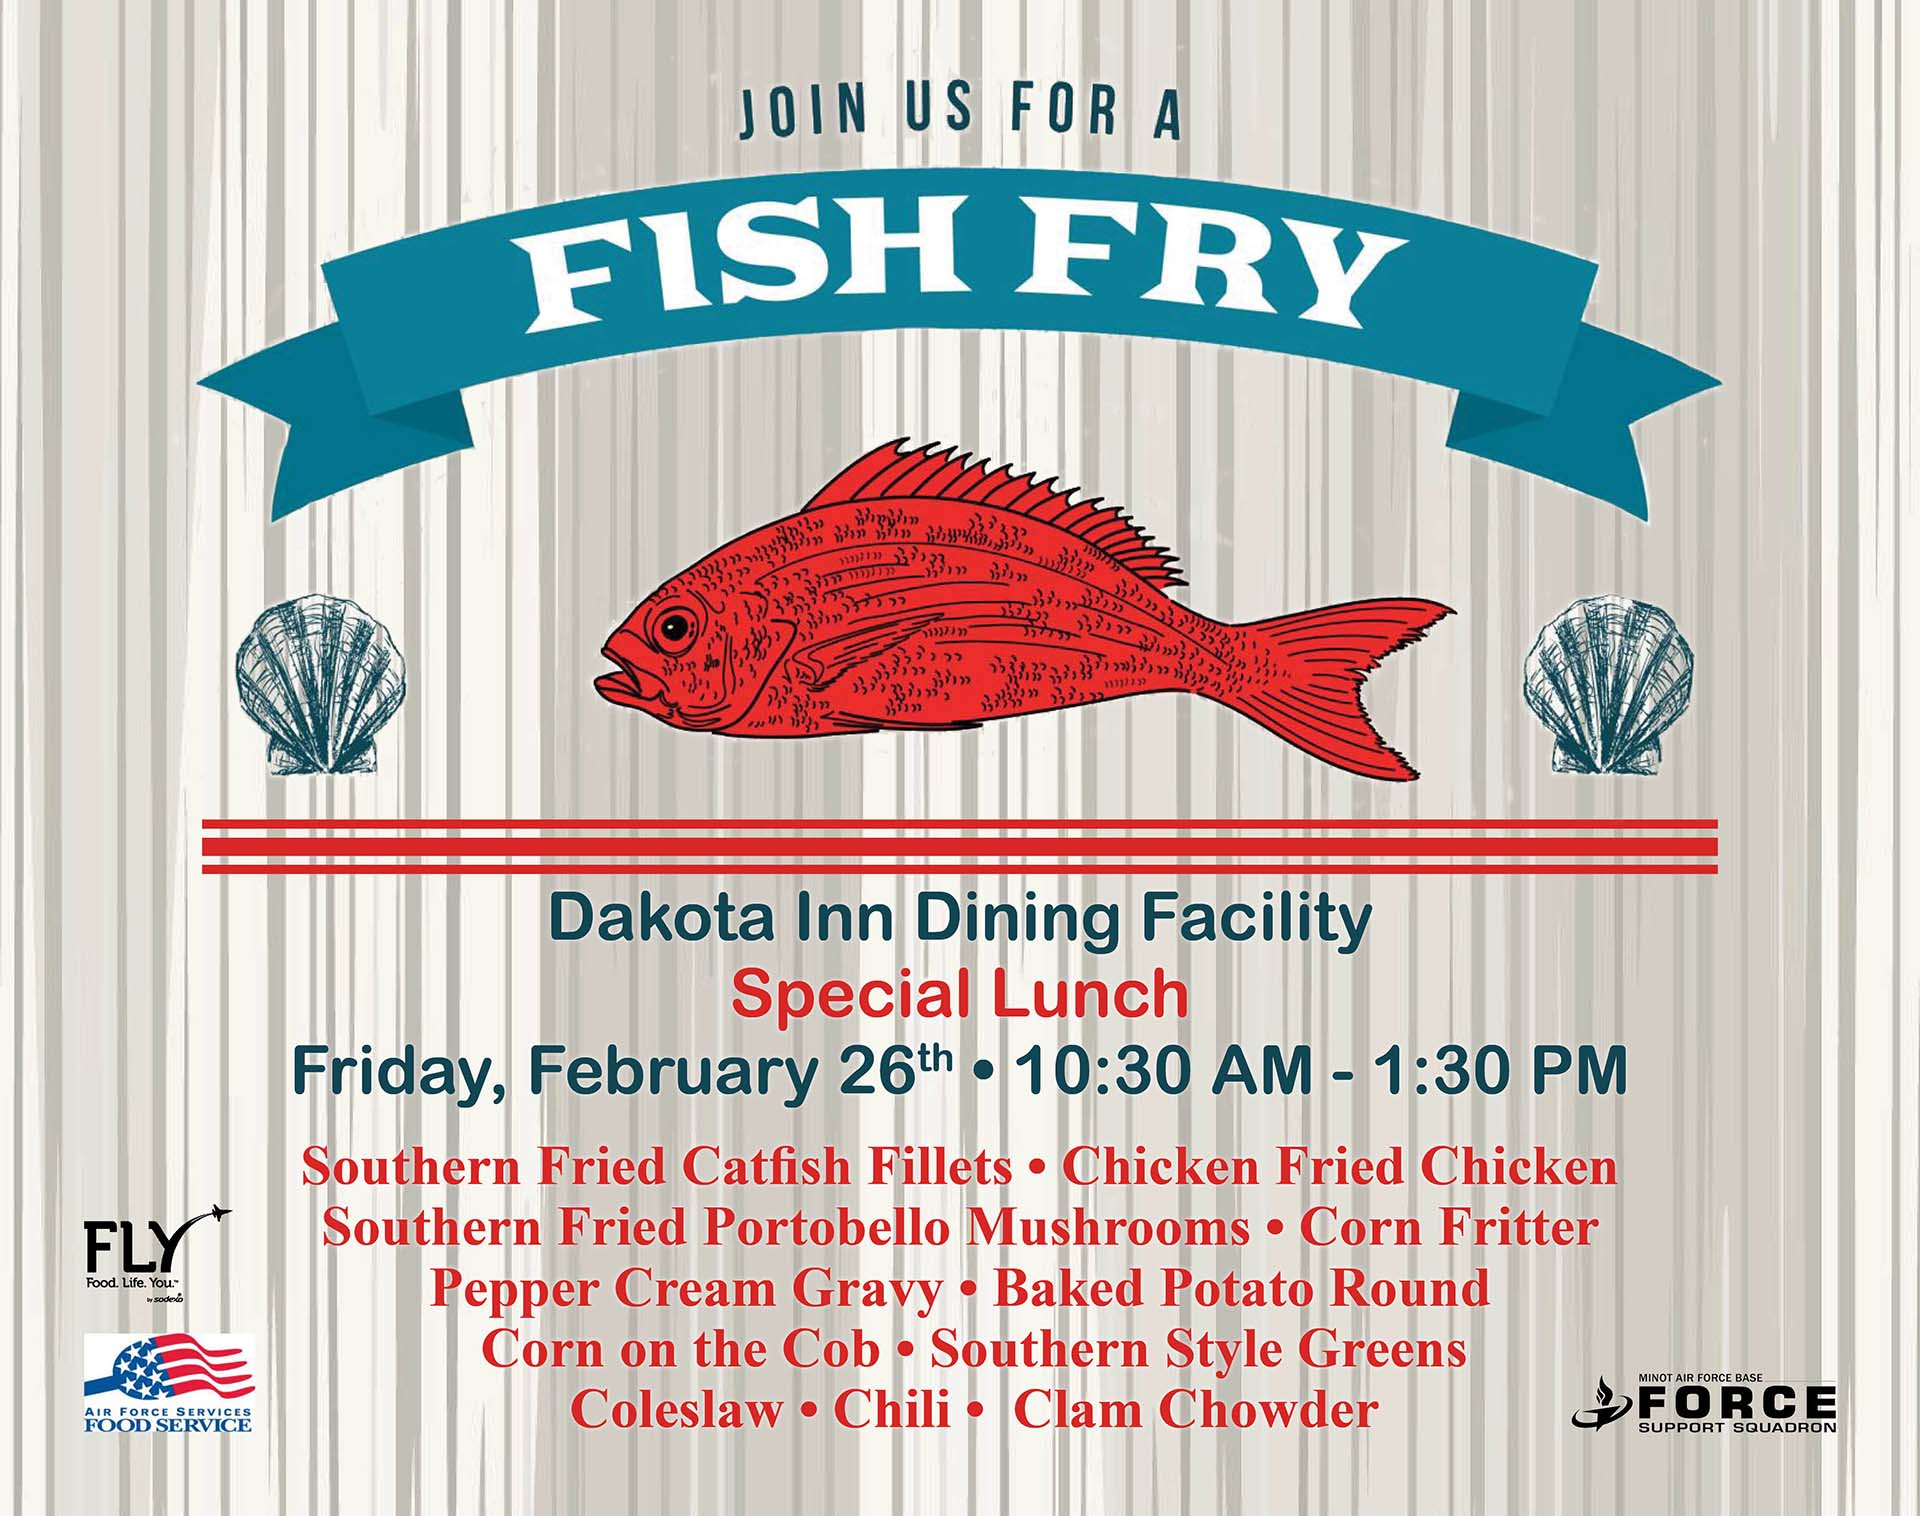 Fish Fry Special Lunch